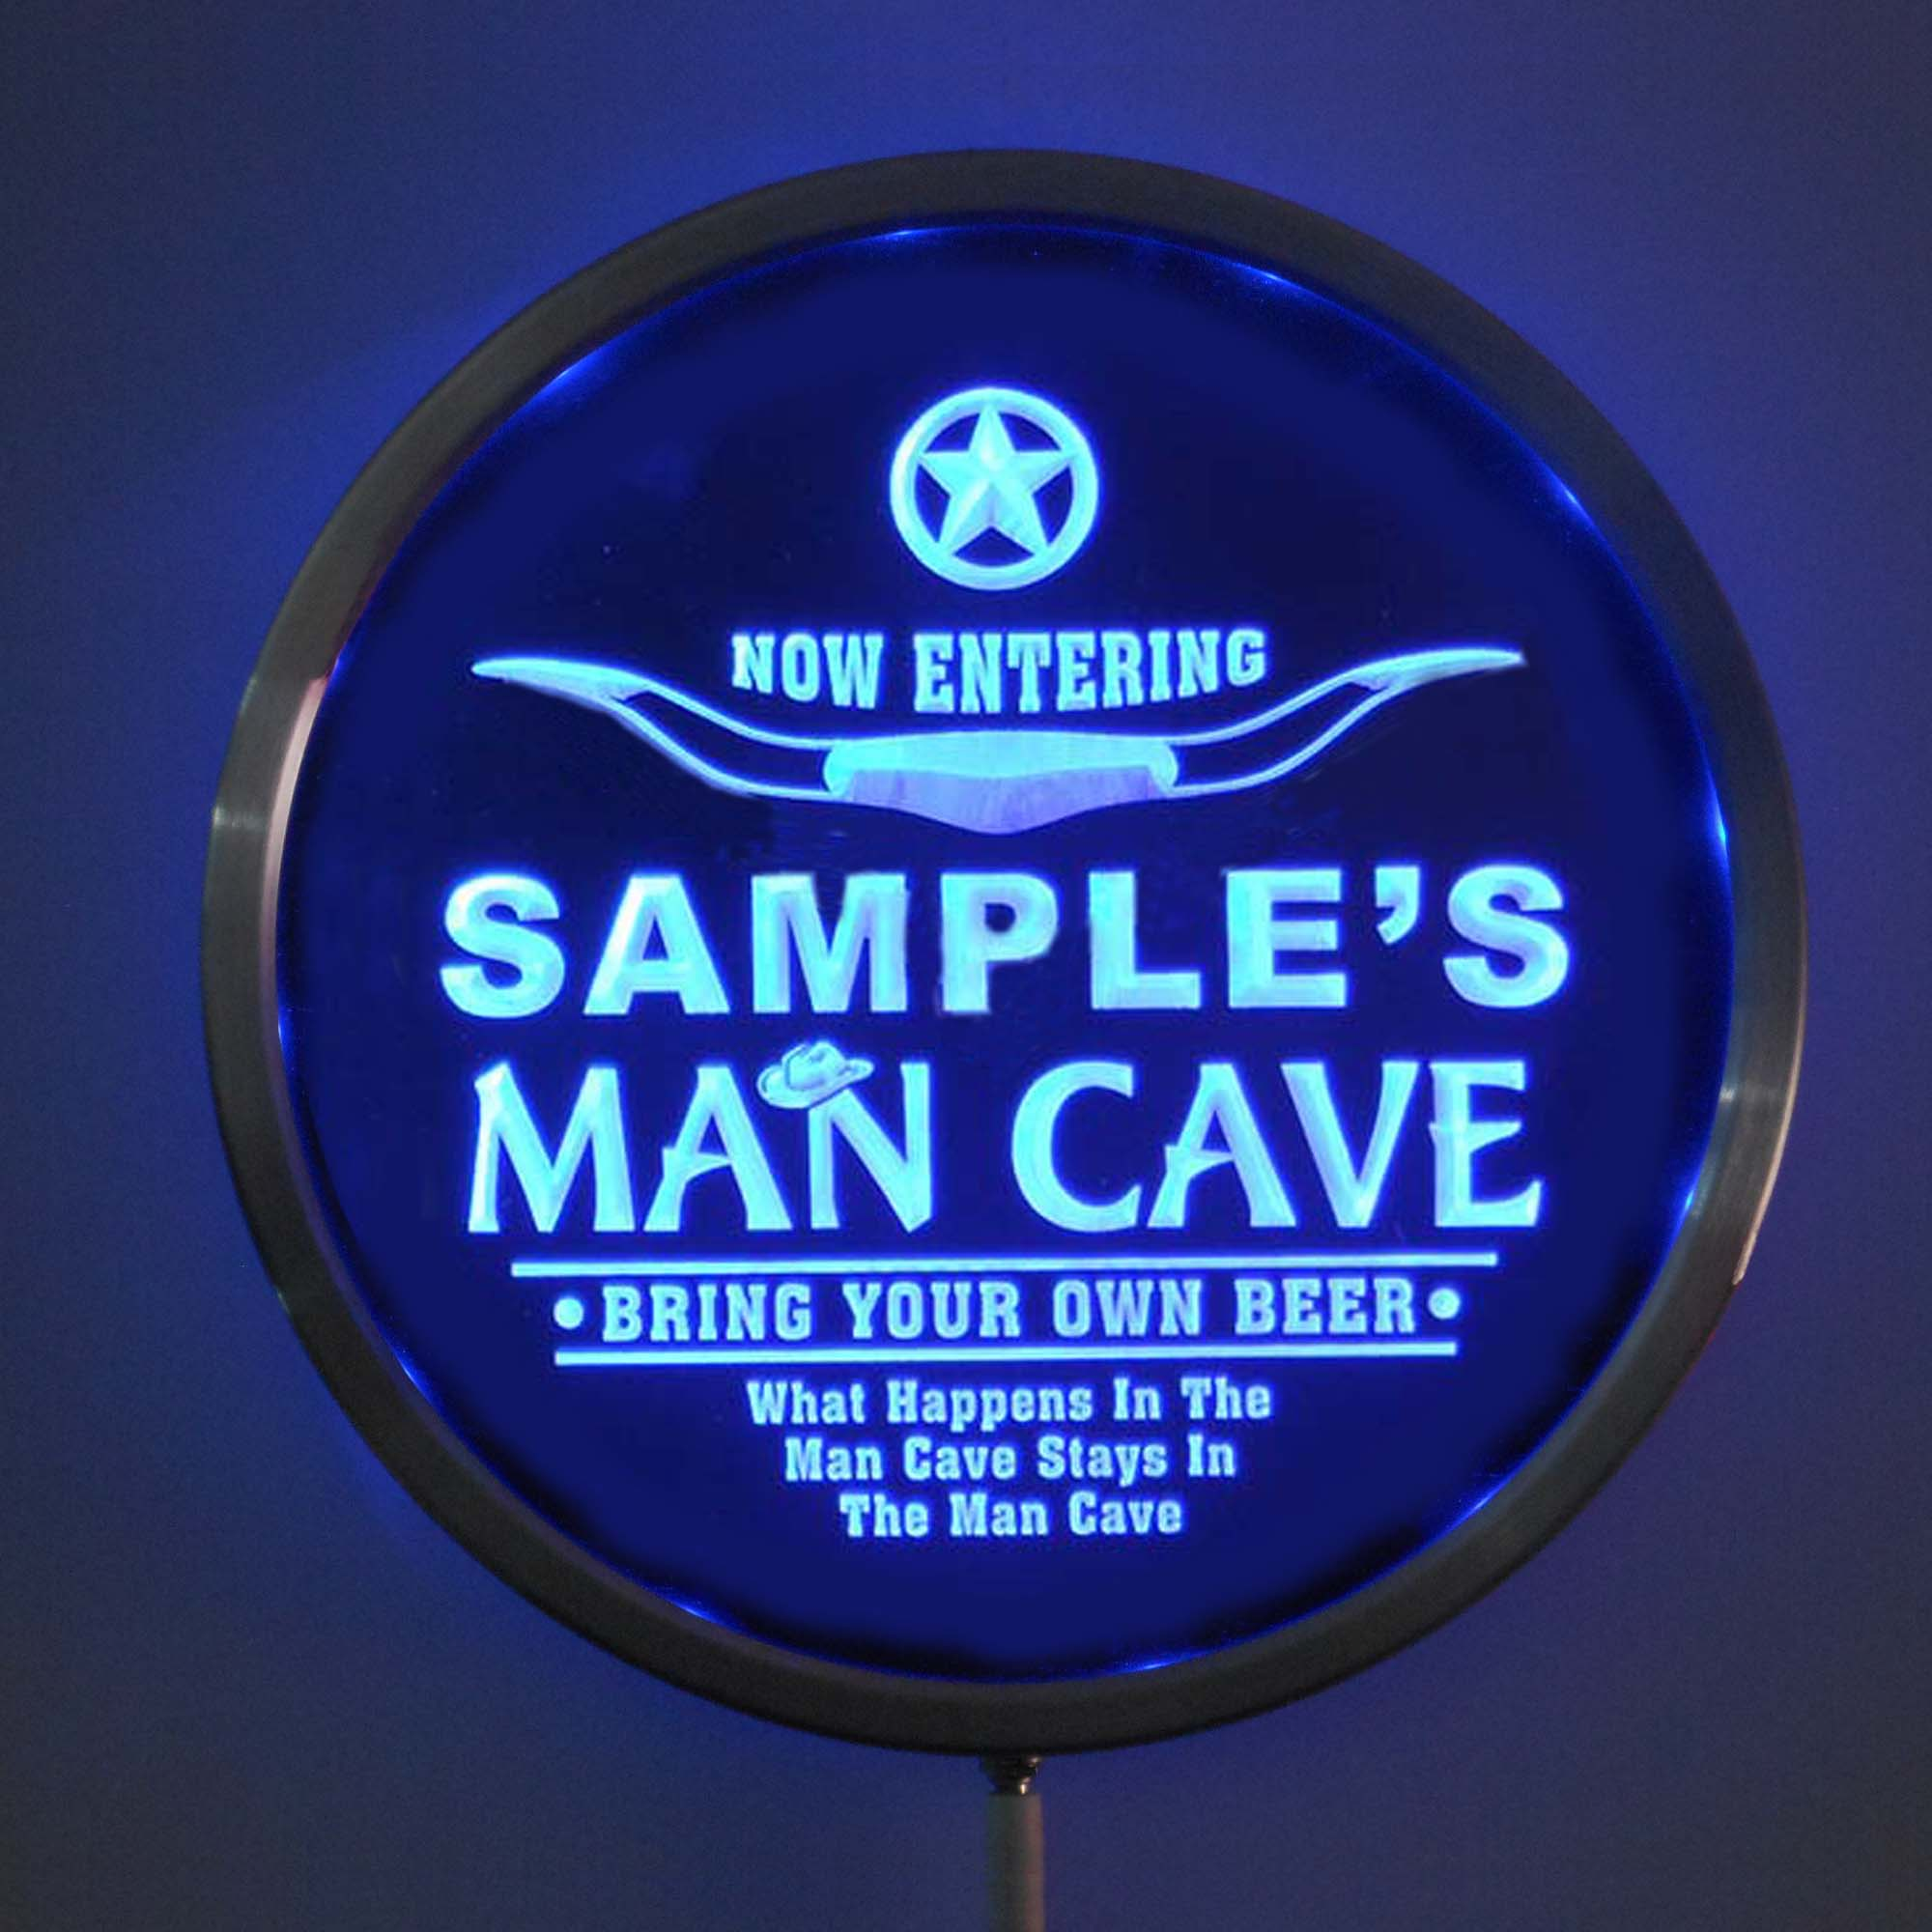 rs-pb-tm Custom LED Neon Round Signs 25cm/ 10 Inch - Personalized MAN CAVE Room Sign RGB Multi-Color Remote Wireless Control